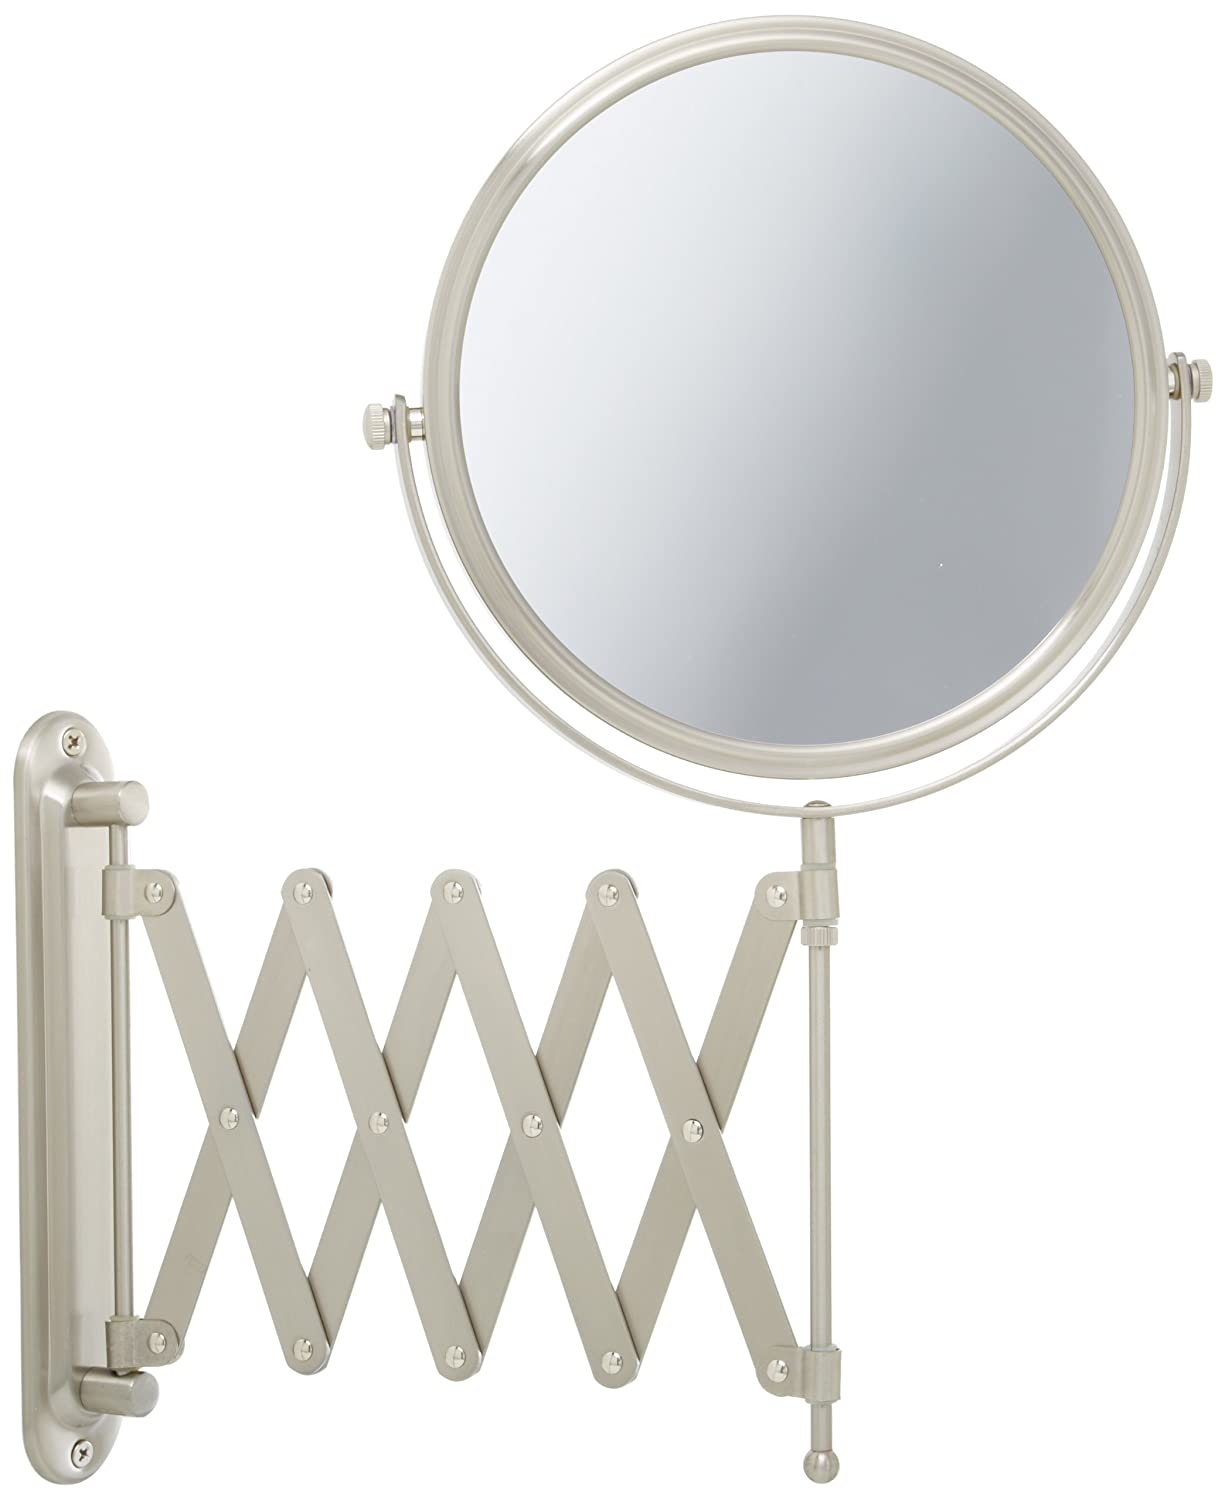 Wall mounted makeup mirror square 3x in wall mirrors - Amazon Com Jerdon Jp2027n 8 Inch Wall Mount Makeup Mirror With 7x Magnification Nickel Finish Beauty